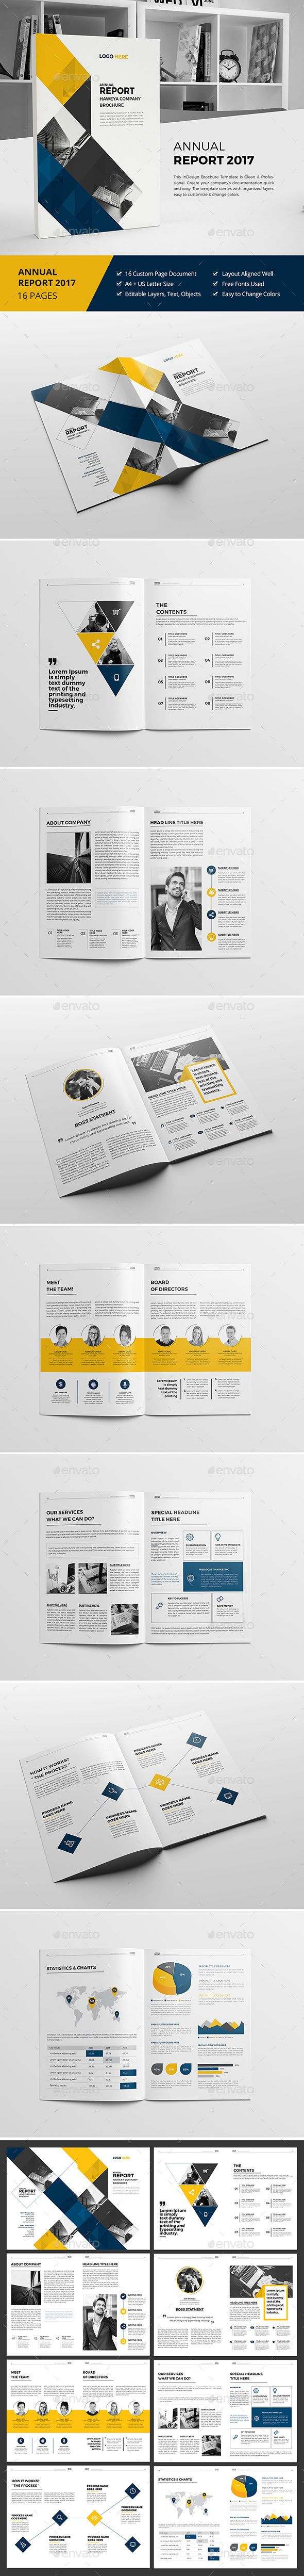 Haweya Annual Report 02  InDesign Template • Download ➝ https://graphicriver.net/item/haweya-annual-report-02-/17032083?ref=pxcr